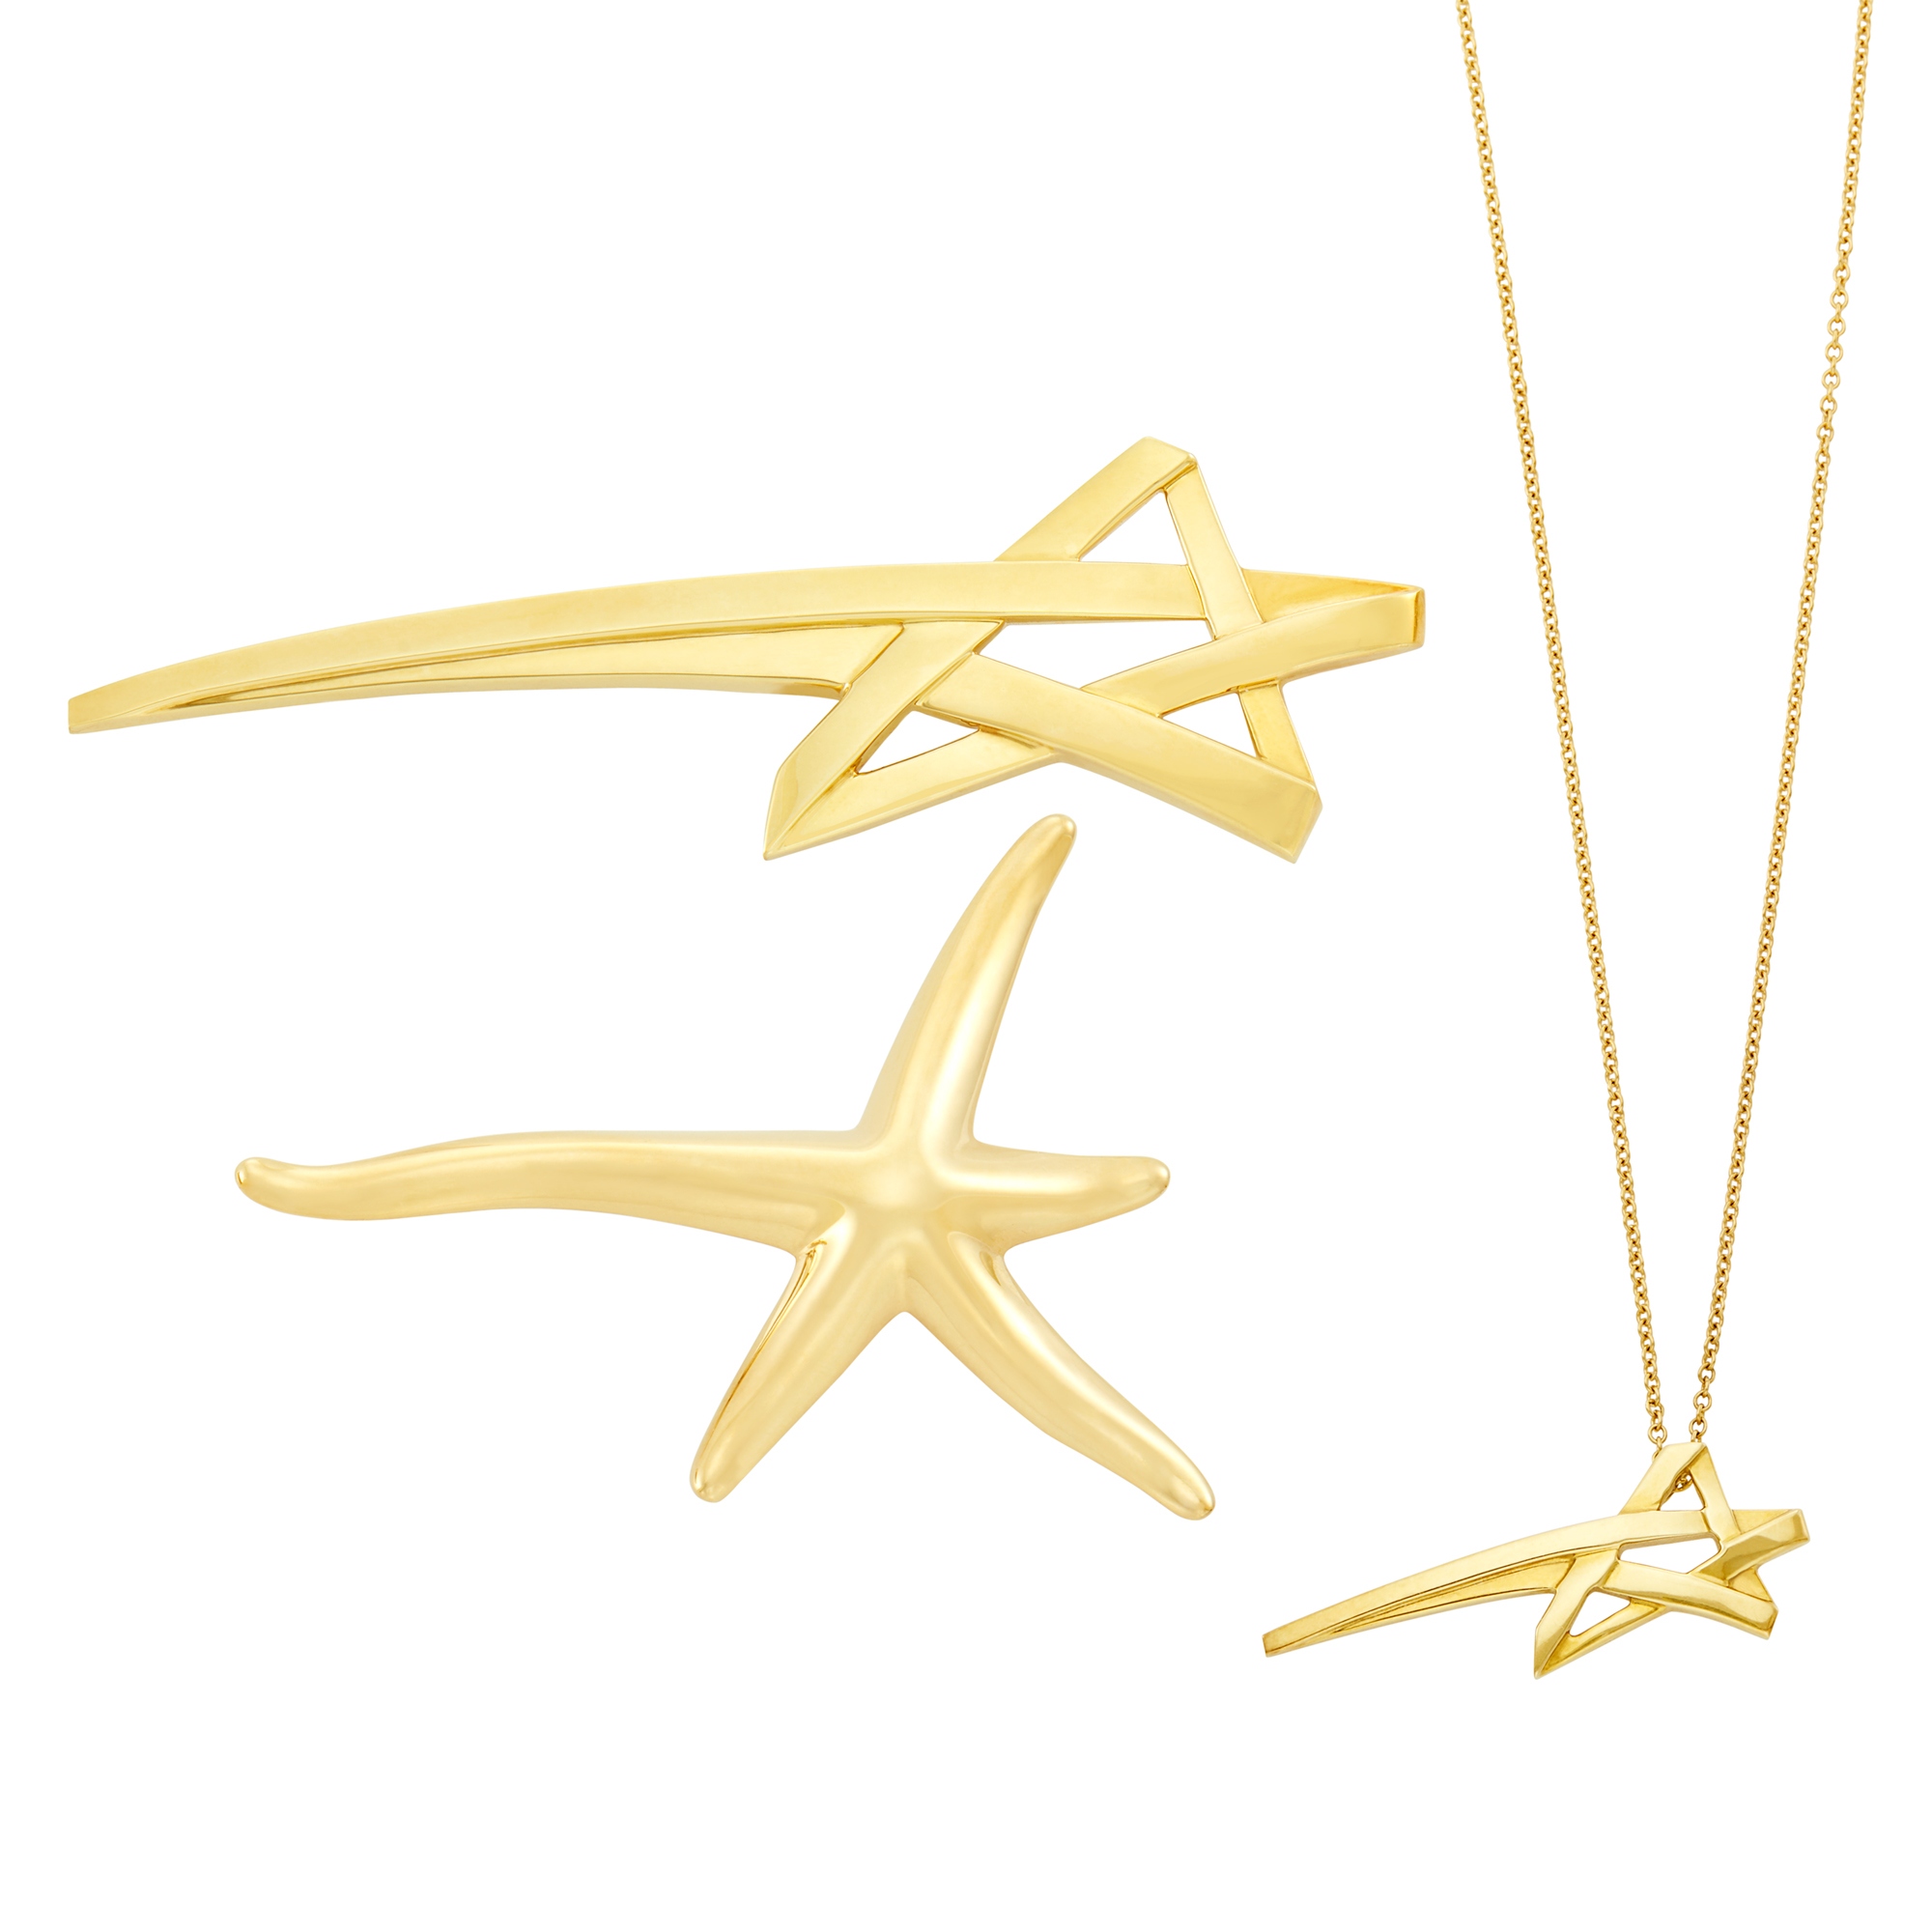 Lot image - Tiffany & Co., Elsa Peretti, Paloma Picasso Gold Starfish Brooch and Gold Star Brooch and Pendant-Necklace